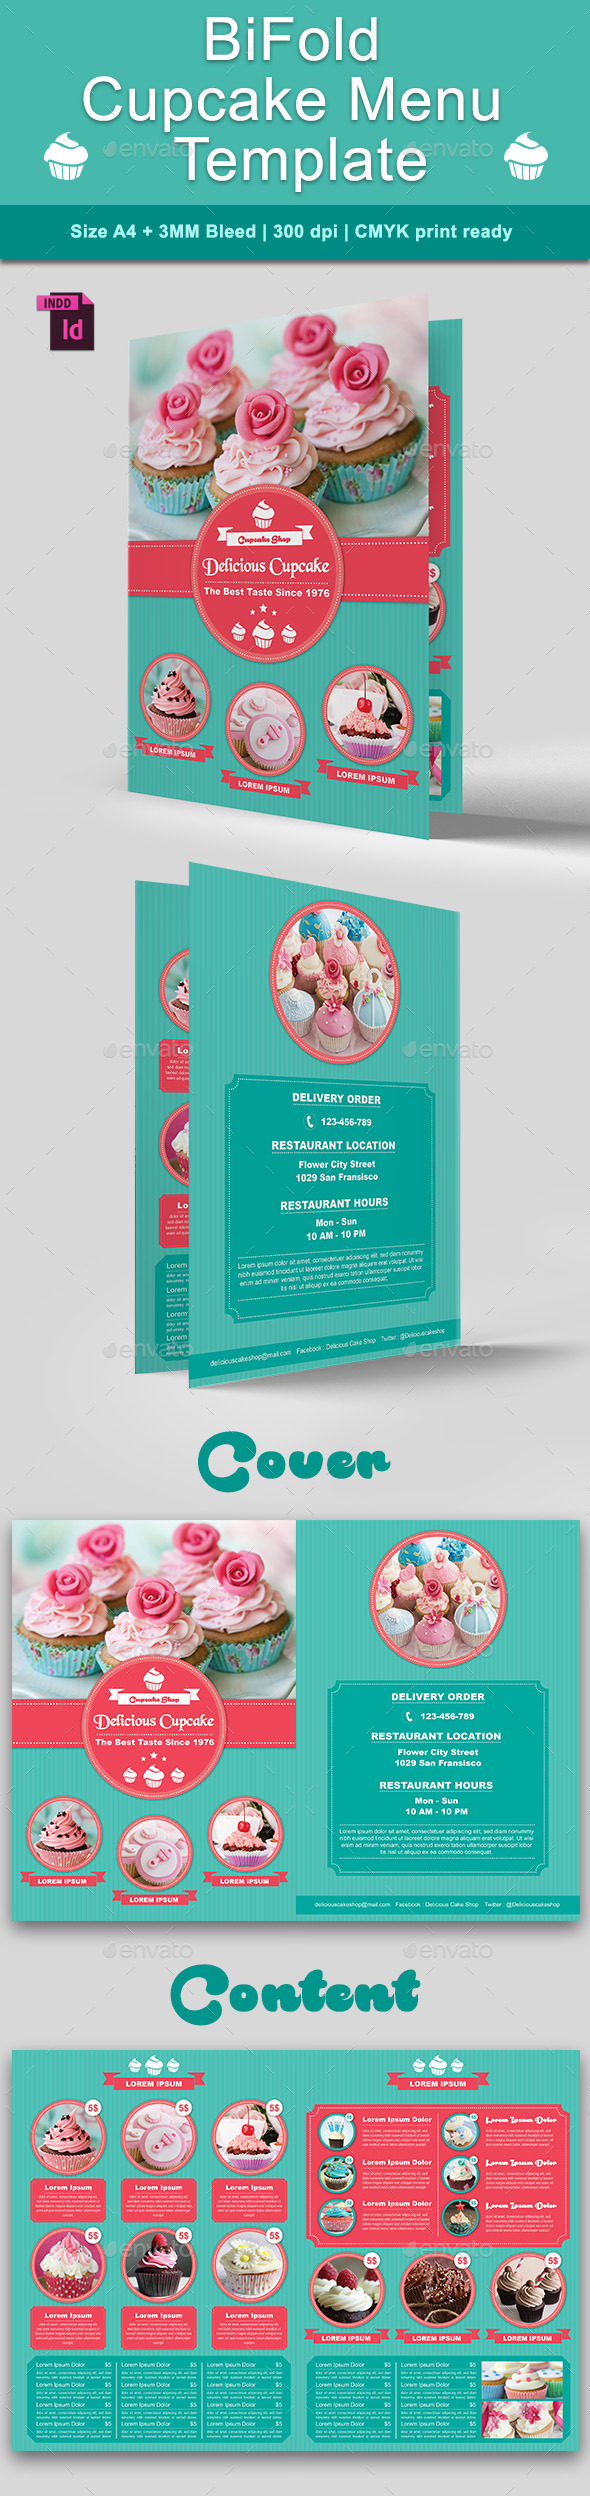 BiFold Cupcake Menu Template - Food Menus Print Templates